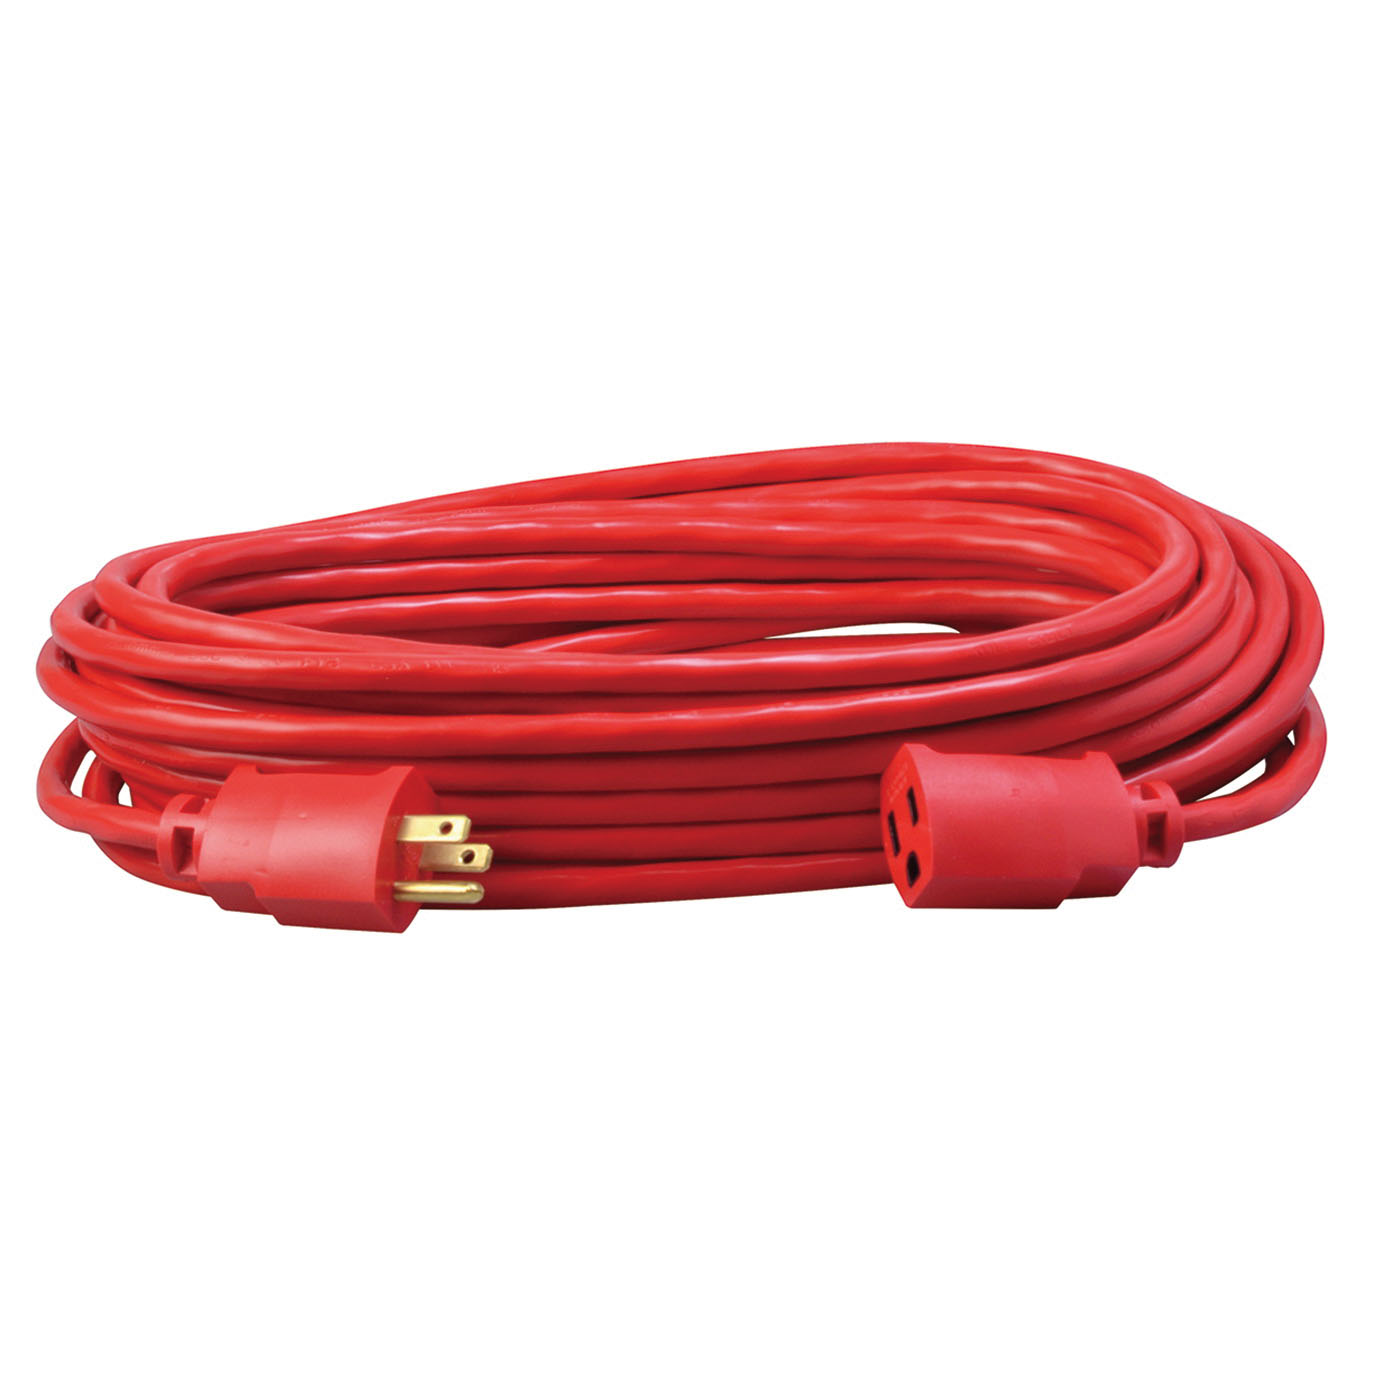 Southwire® 2408SW8804 Red Medium Duty Extension Cord, 50 ft